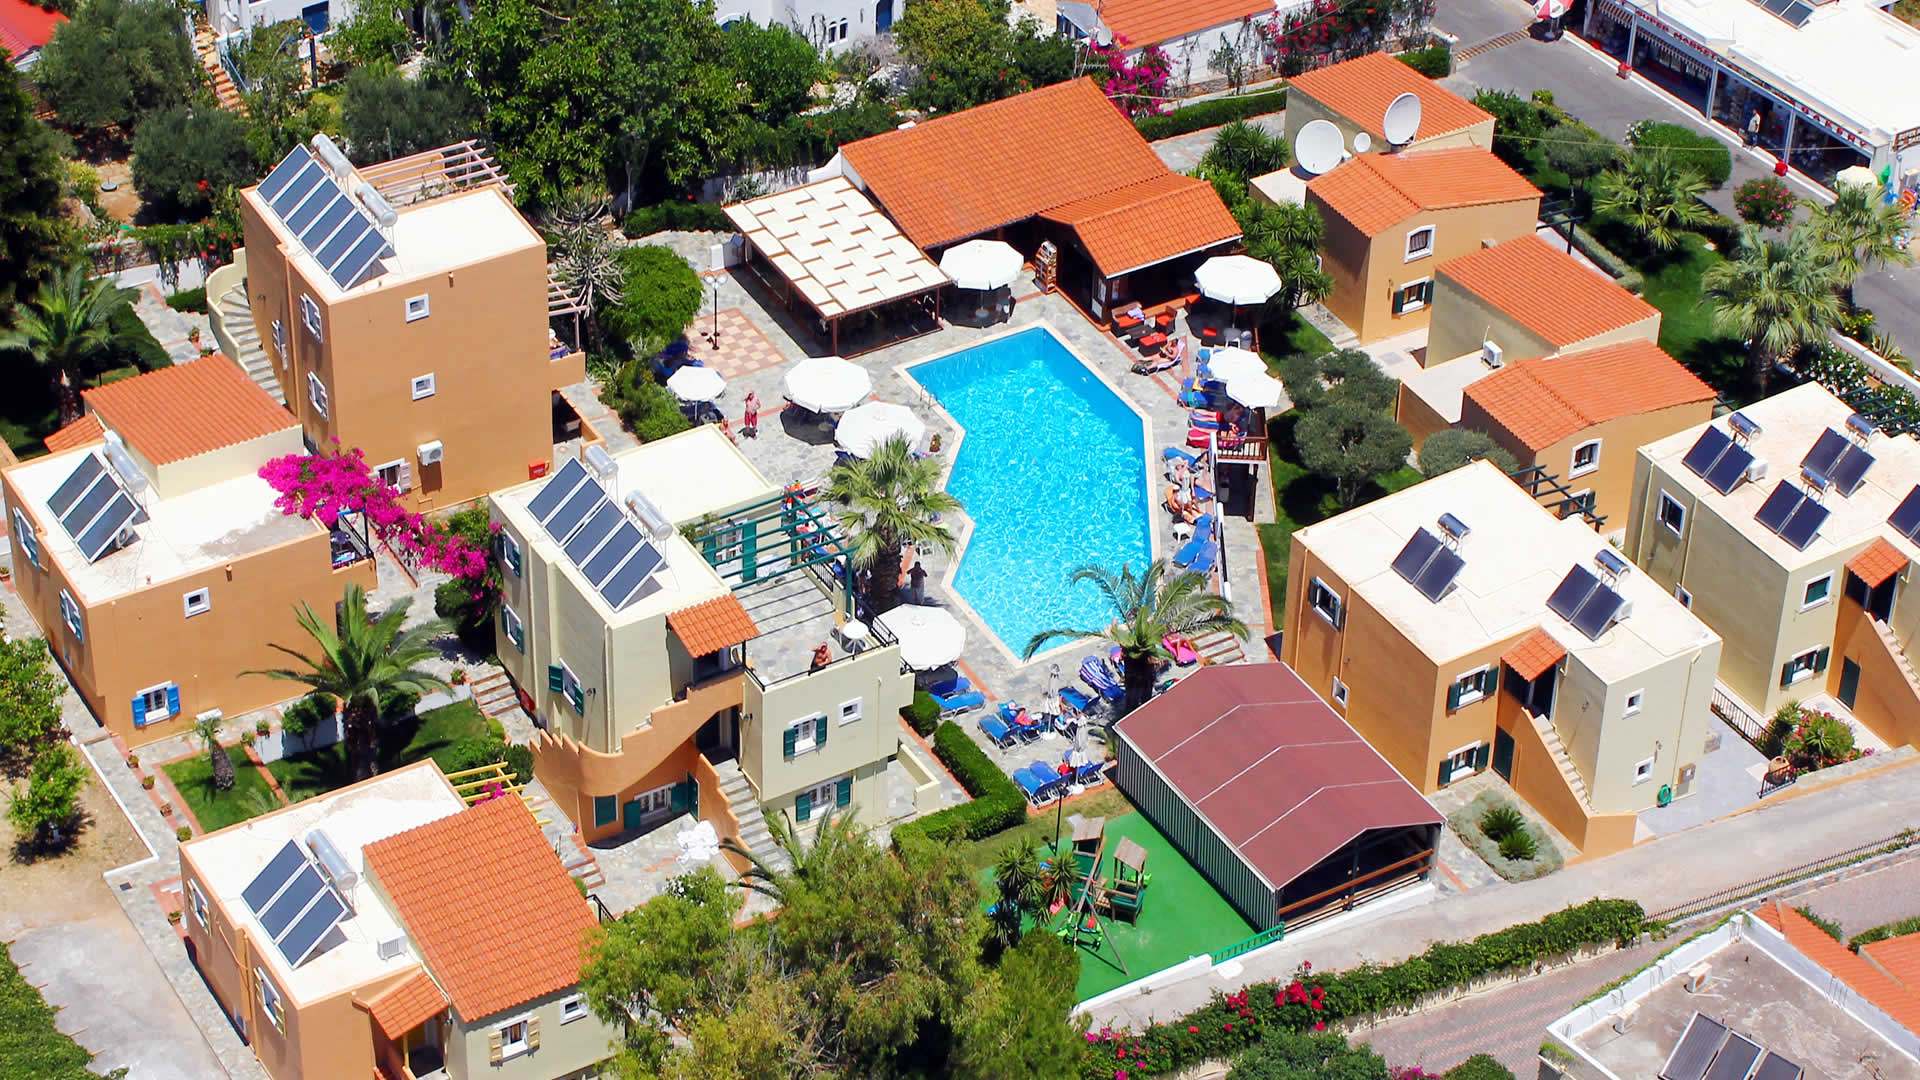 Sunrise Apartments - Koutouloufari